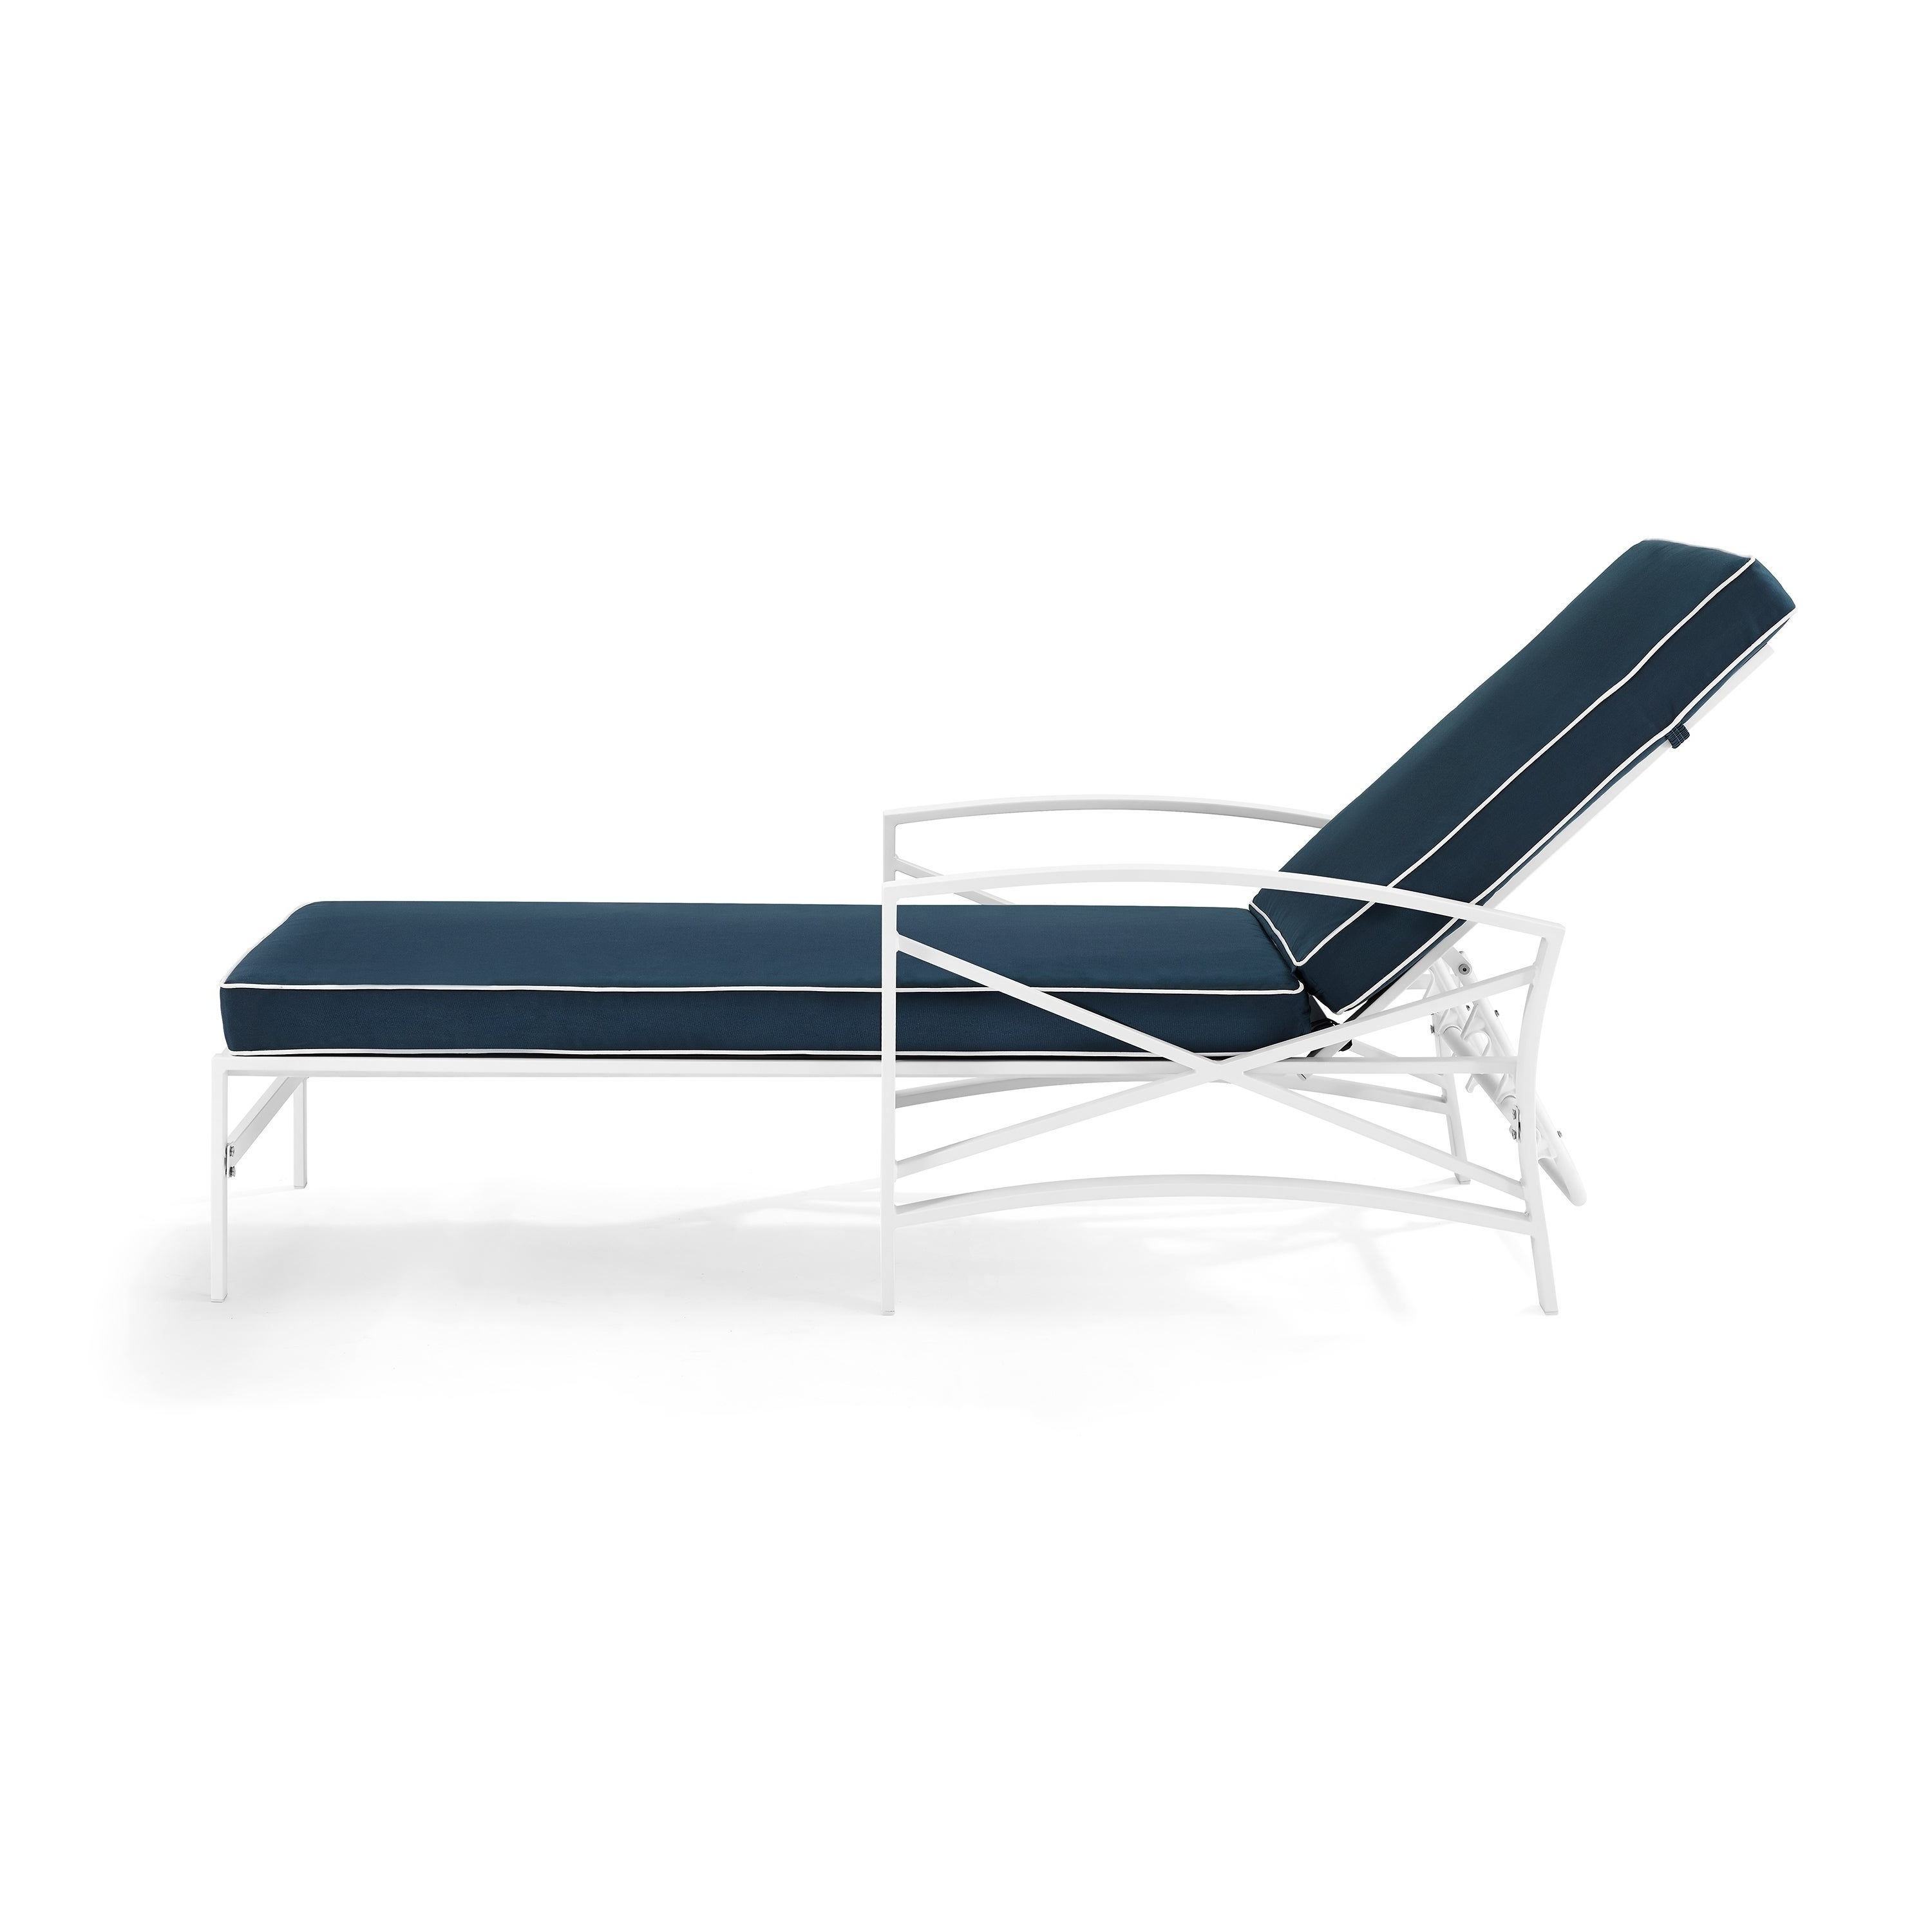 Havenside Home Davis Chaise Lounge Chair In White With Navy Cushions Pertaining To Most Up To Date Chaise Lounge Chairs In White With Navy Cushions (View 3 of 25)